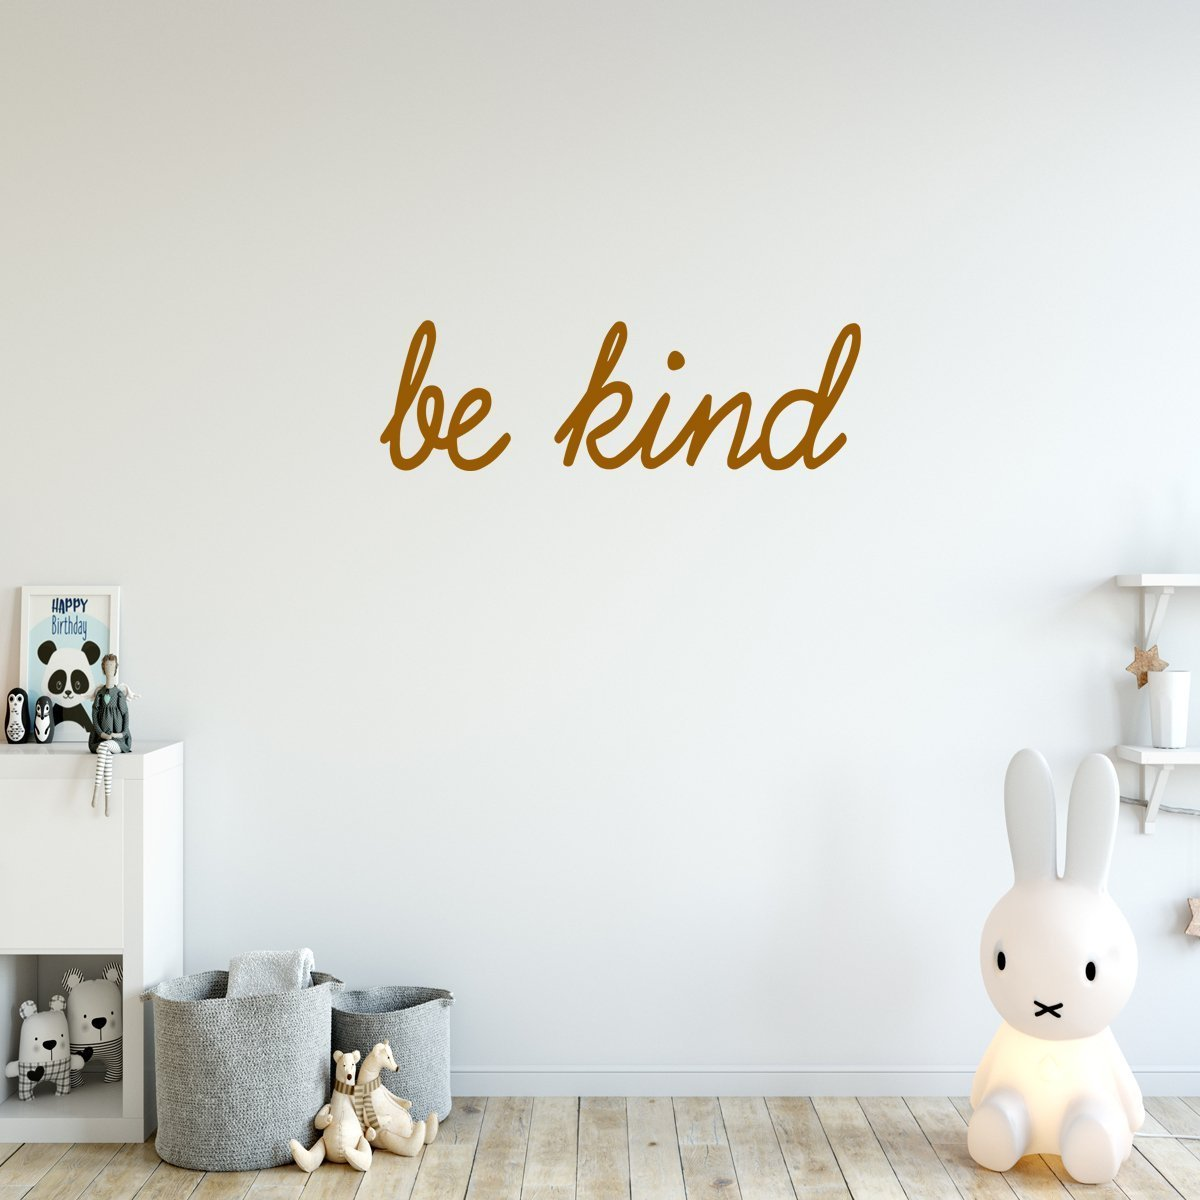 VWAQ Be Kind Wall Decal Inspirational Be Kind Quotes - VWAQ Vinyl Wall Art Quotes and Prints